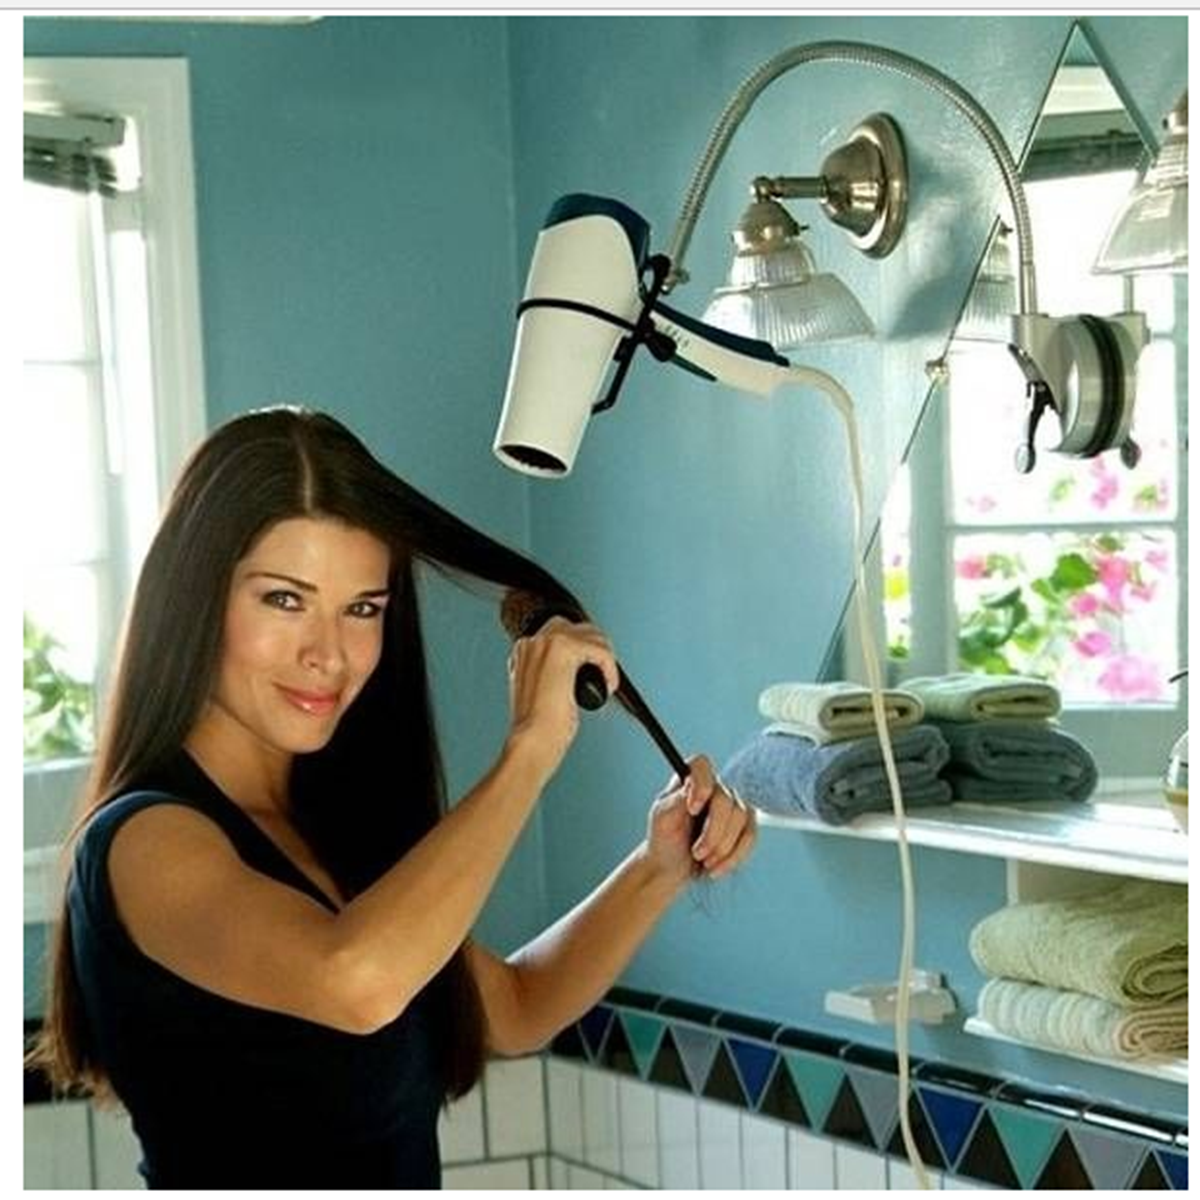 360° Adjustable Hands Free Hair Dryer Wall Mount Stand Holder With Suction Cup